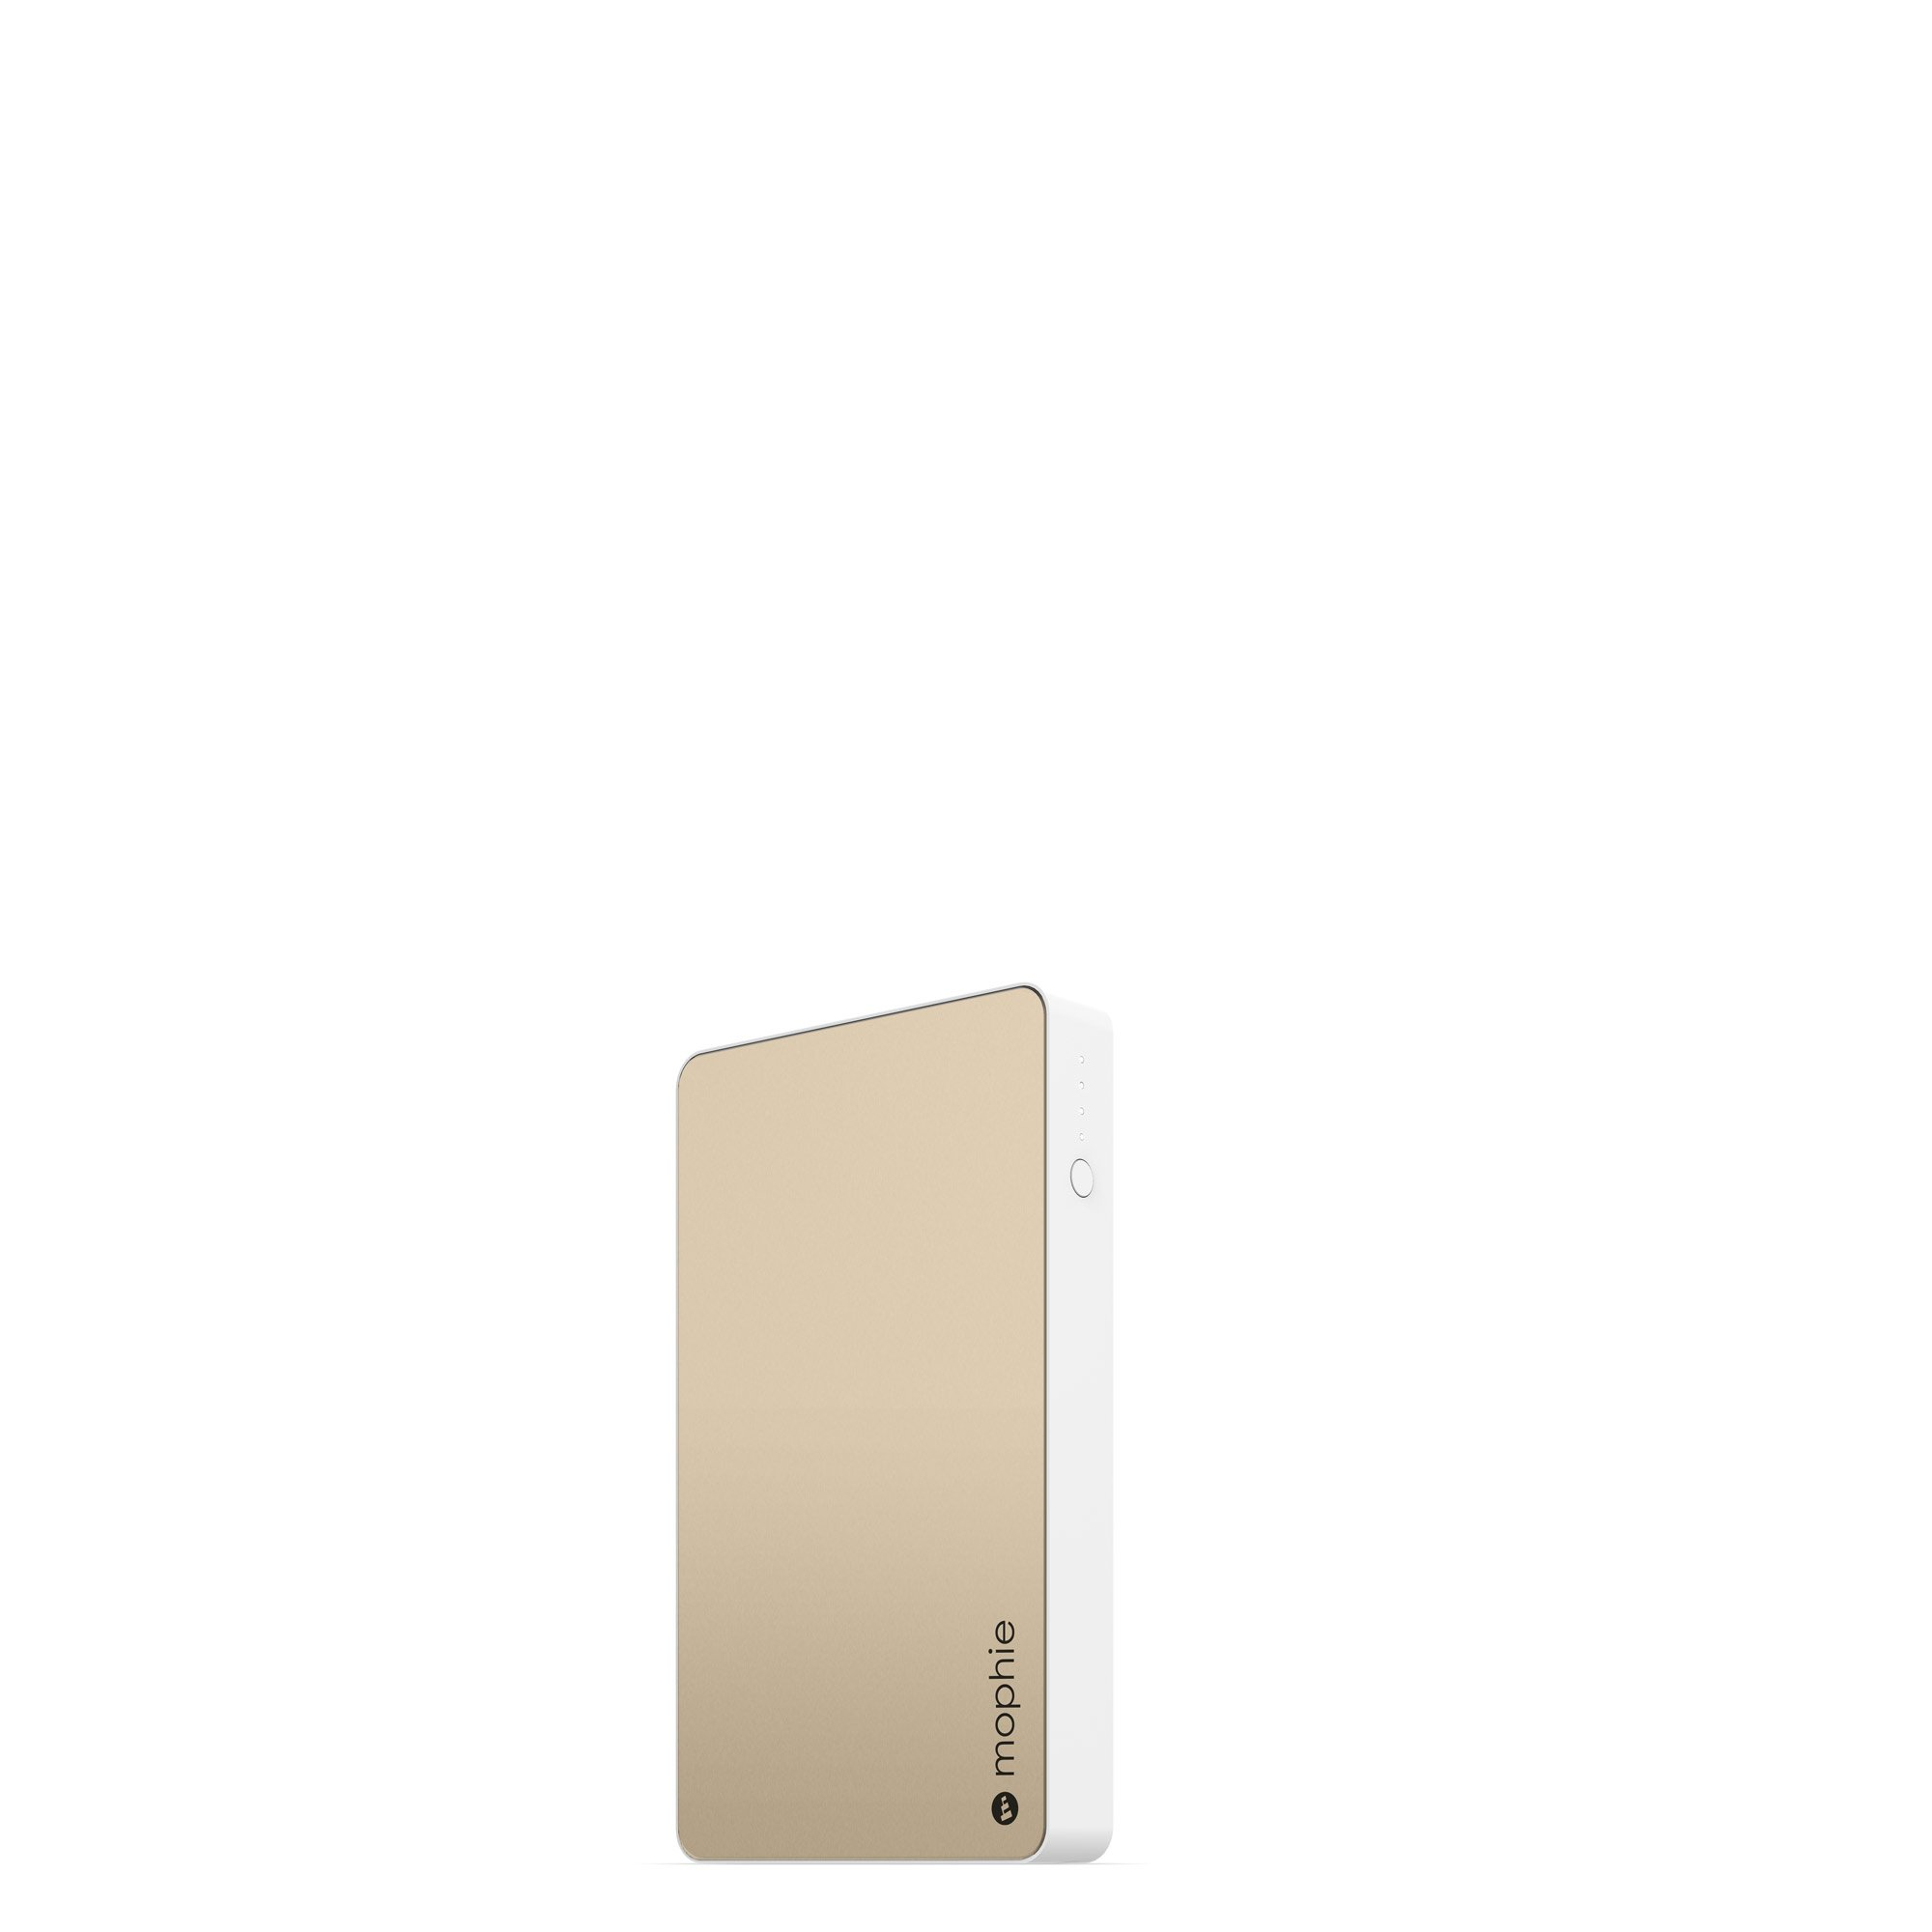 mophie powerstation External Battery for Universal Smartphones and Tablets (6,000mAh) - Gold